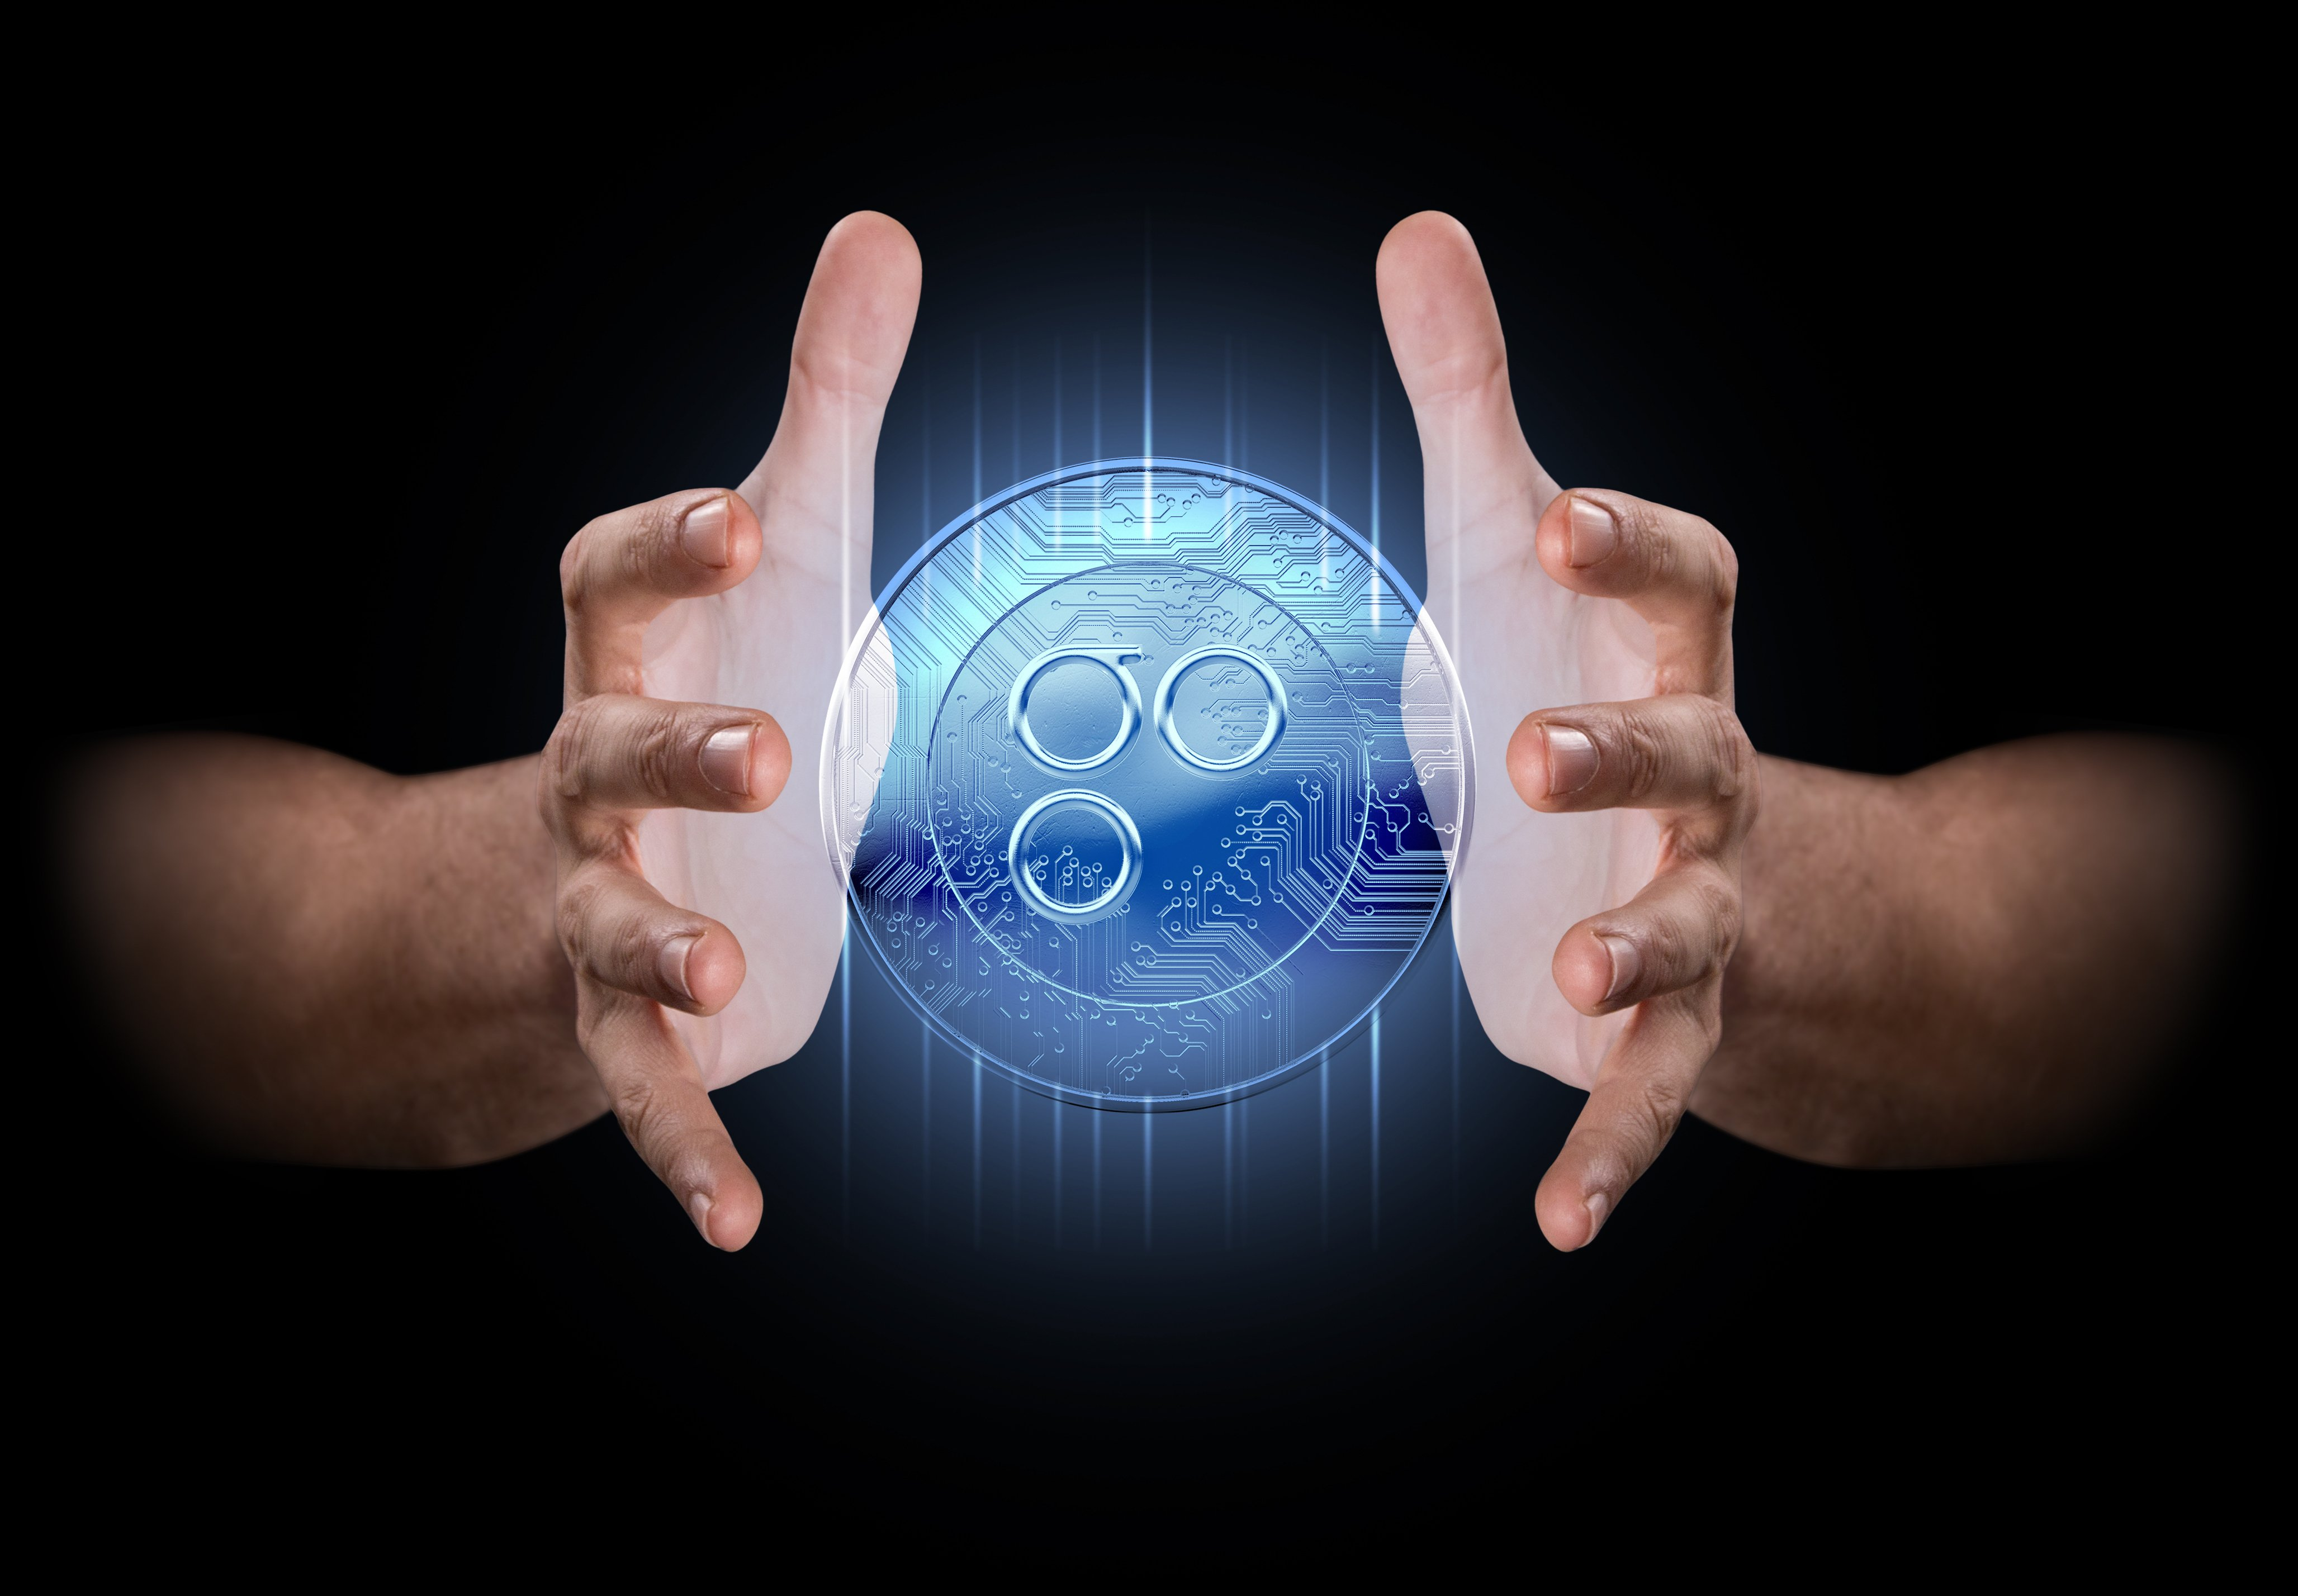 hands enveloping a hologram of an omisego